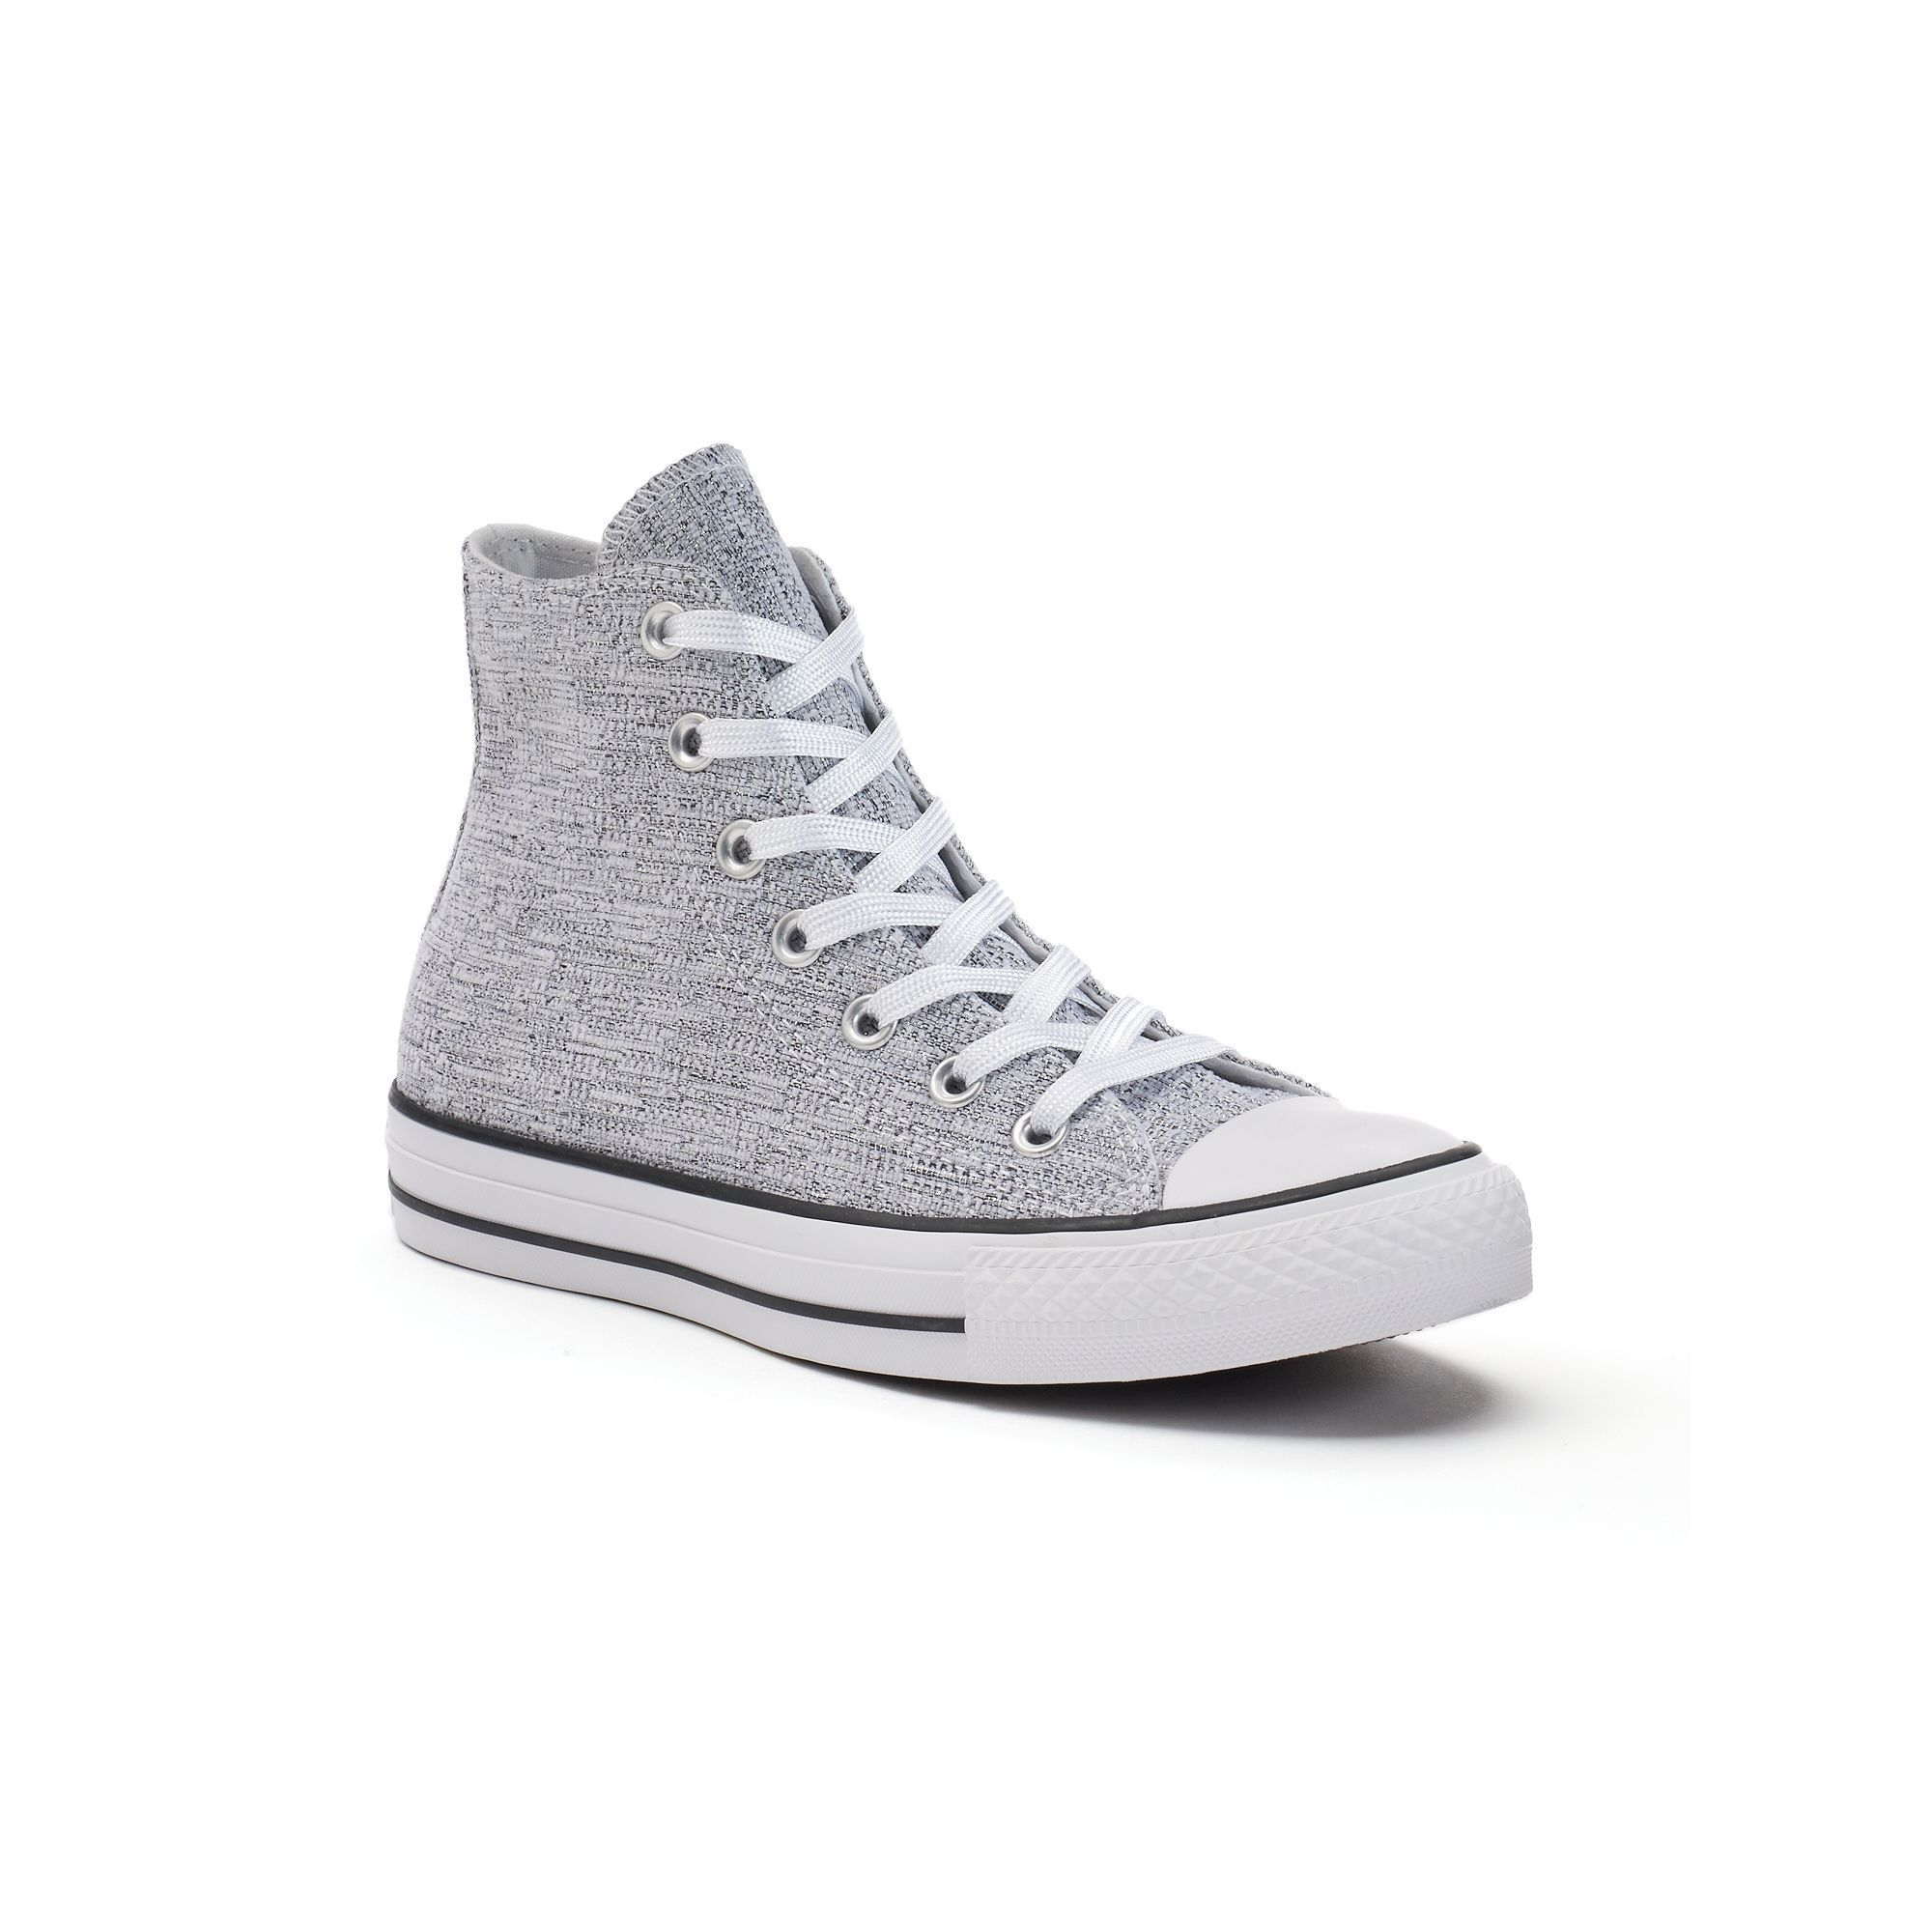 Women s Converse Chuck Taylor All Star Sparkle Knit High-Top Sneakers 4ae58d33e